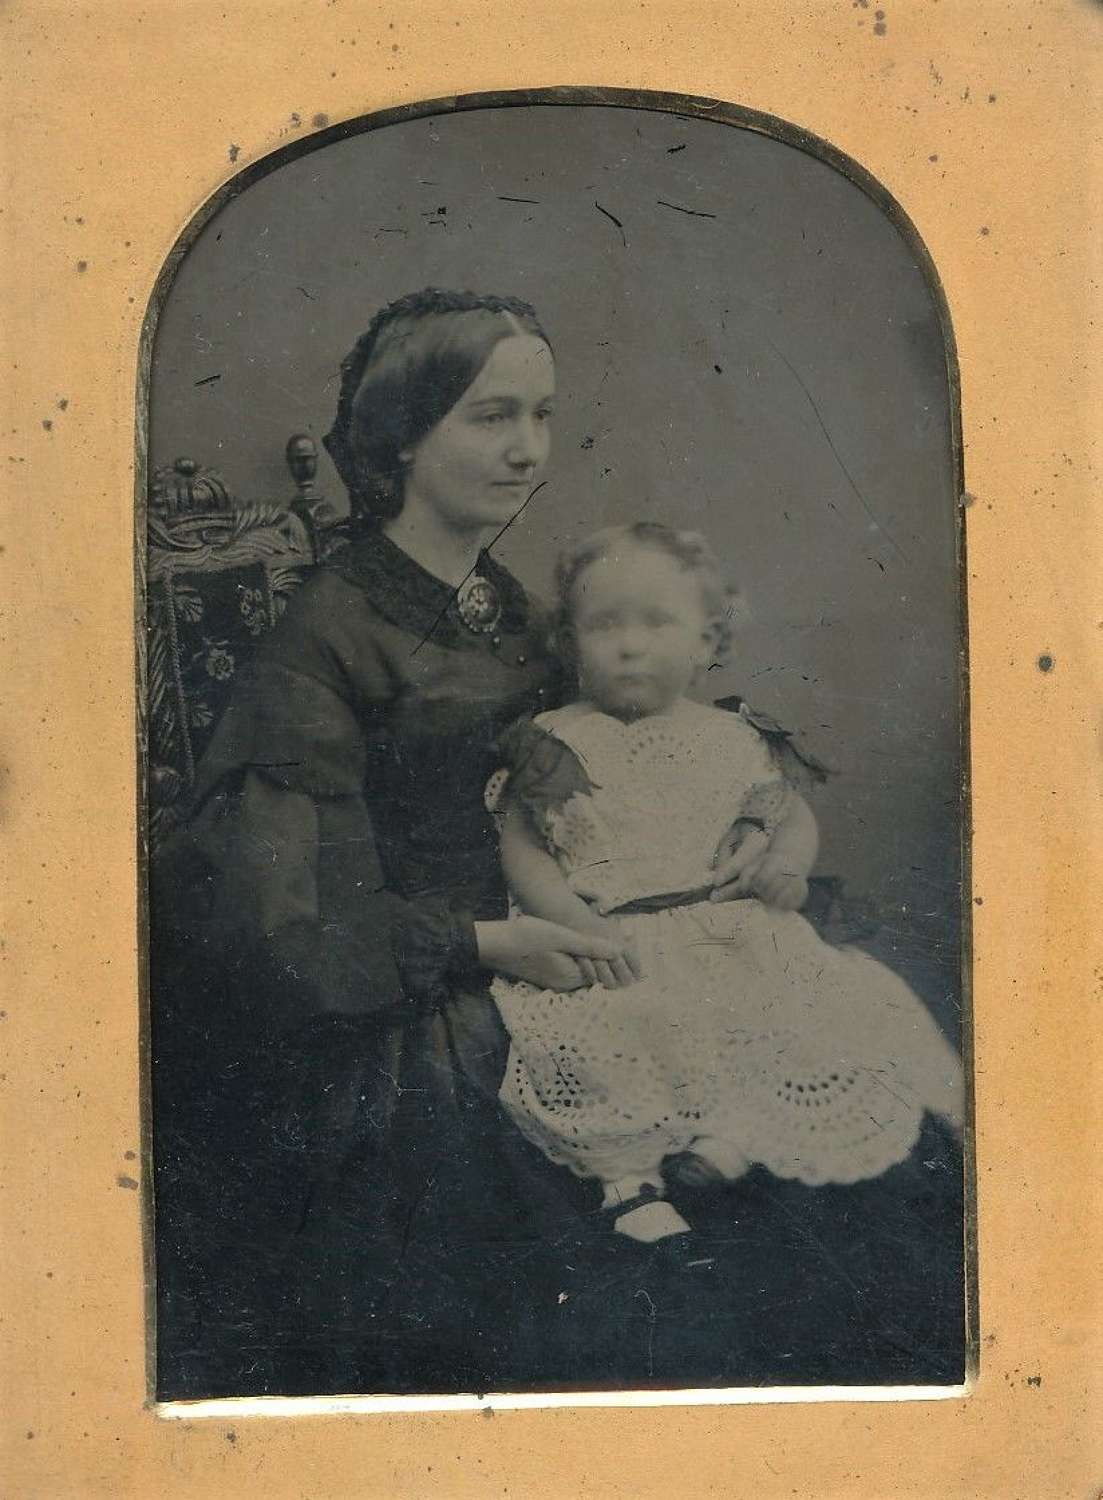 1/4 Plate Ambrotype Mother and Baby C1860